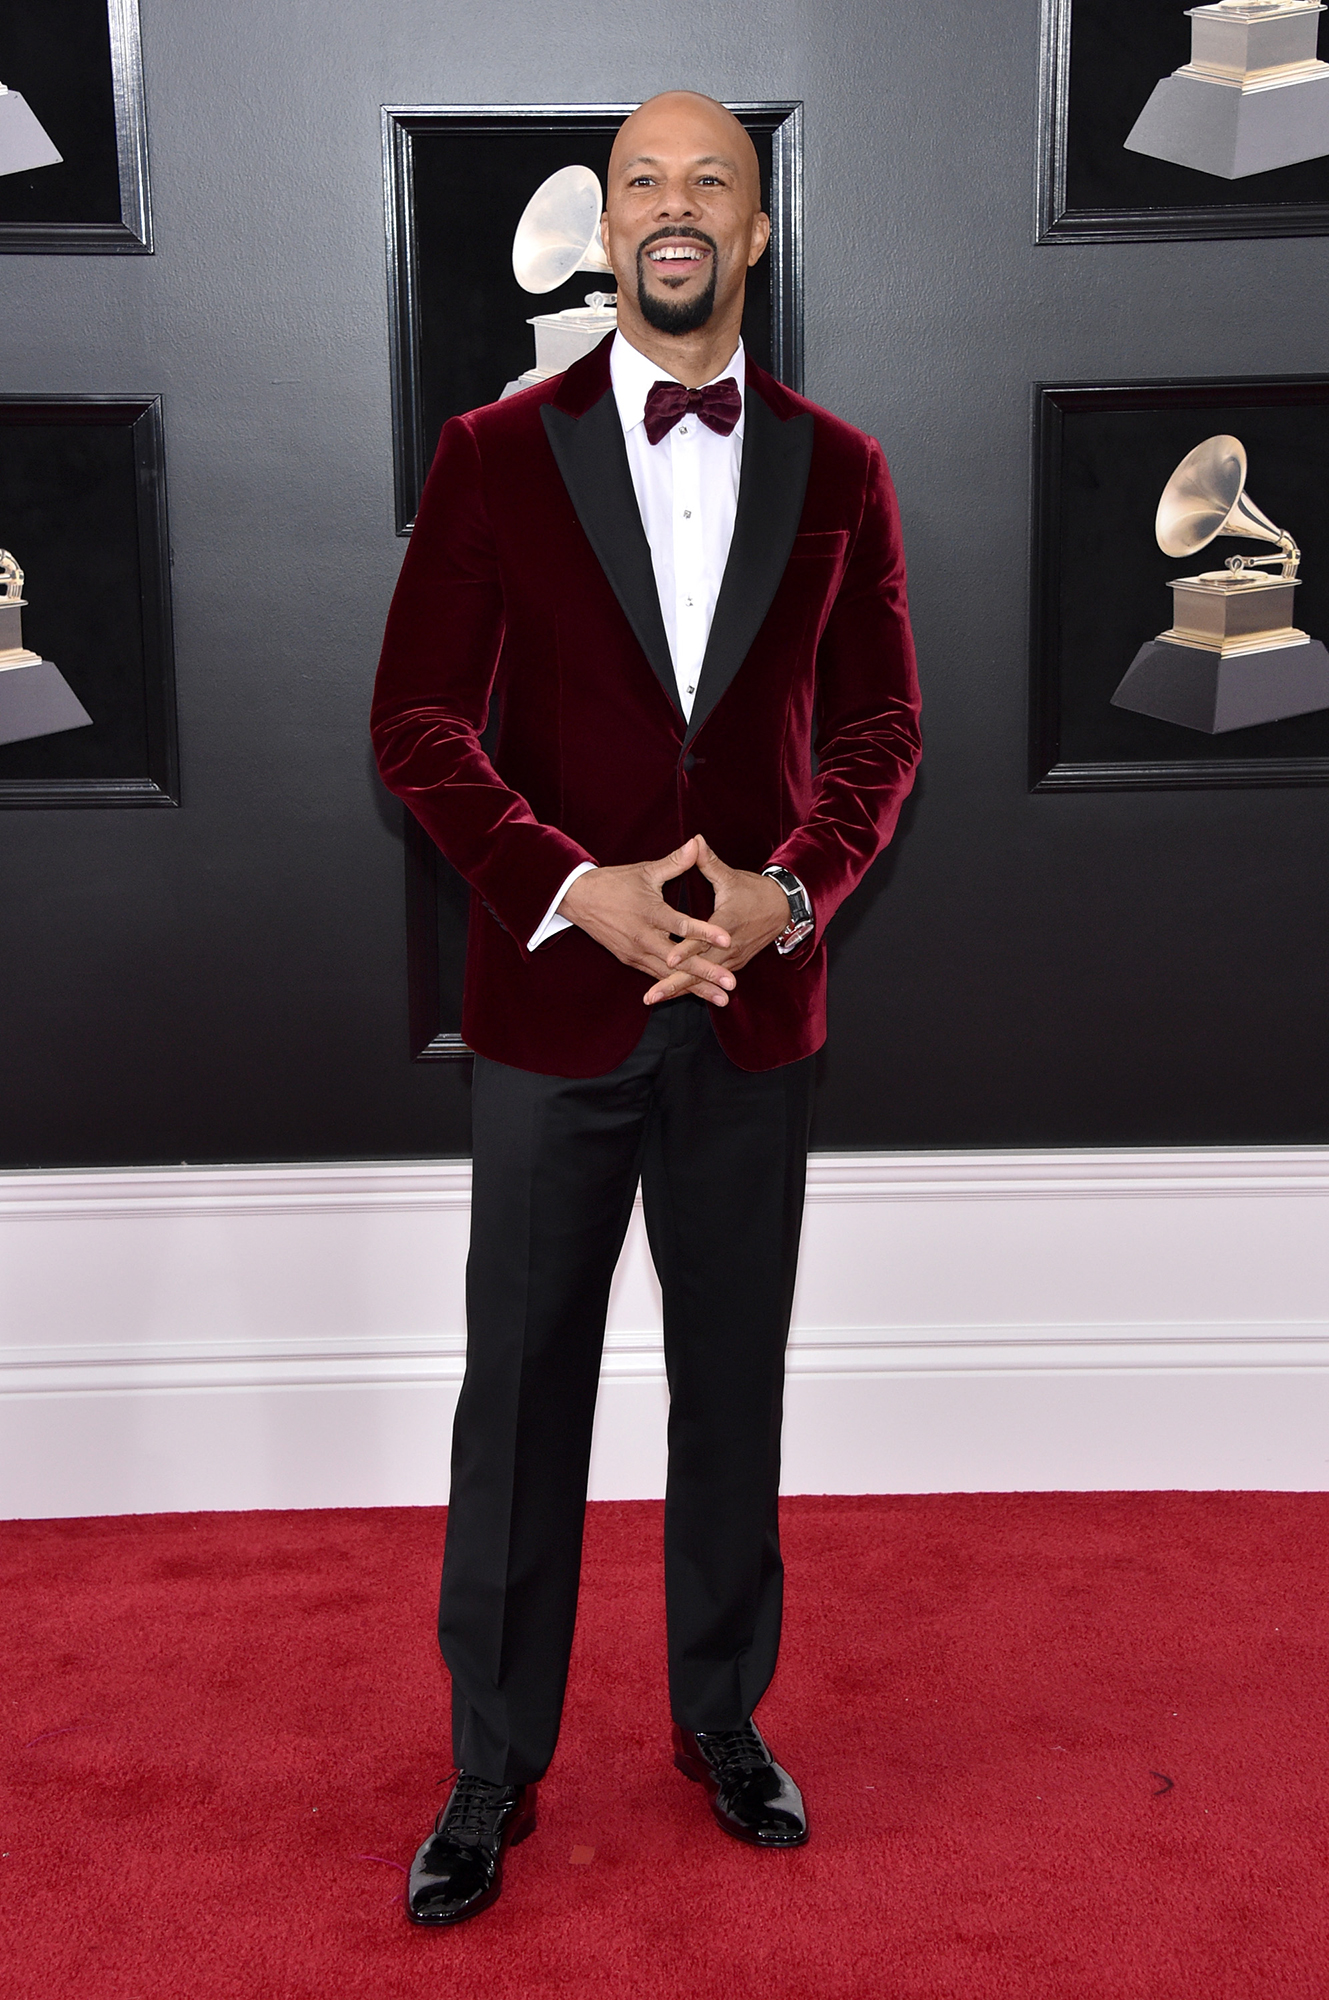 Hottest Guys in Suits - 2018 Edition - When in doubt, wear velvet, as the rapper proved at the Grammys in his merlot Giorgio Armani made-to-measure tux.